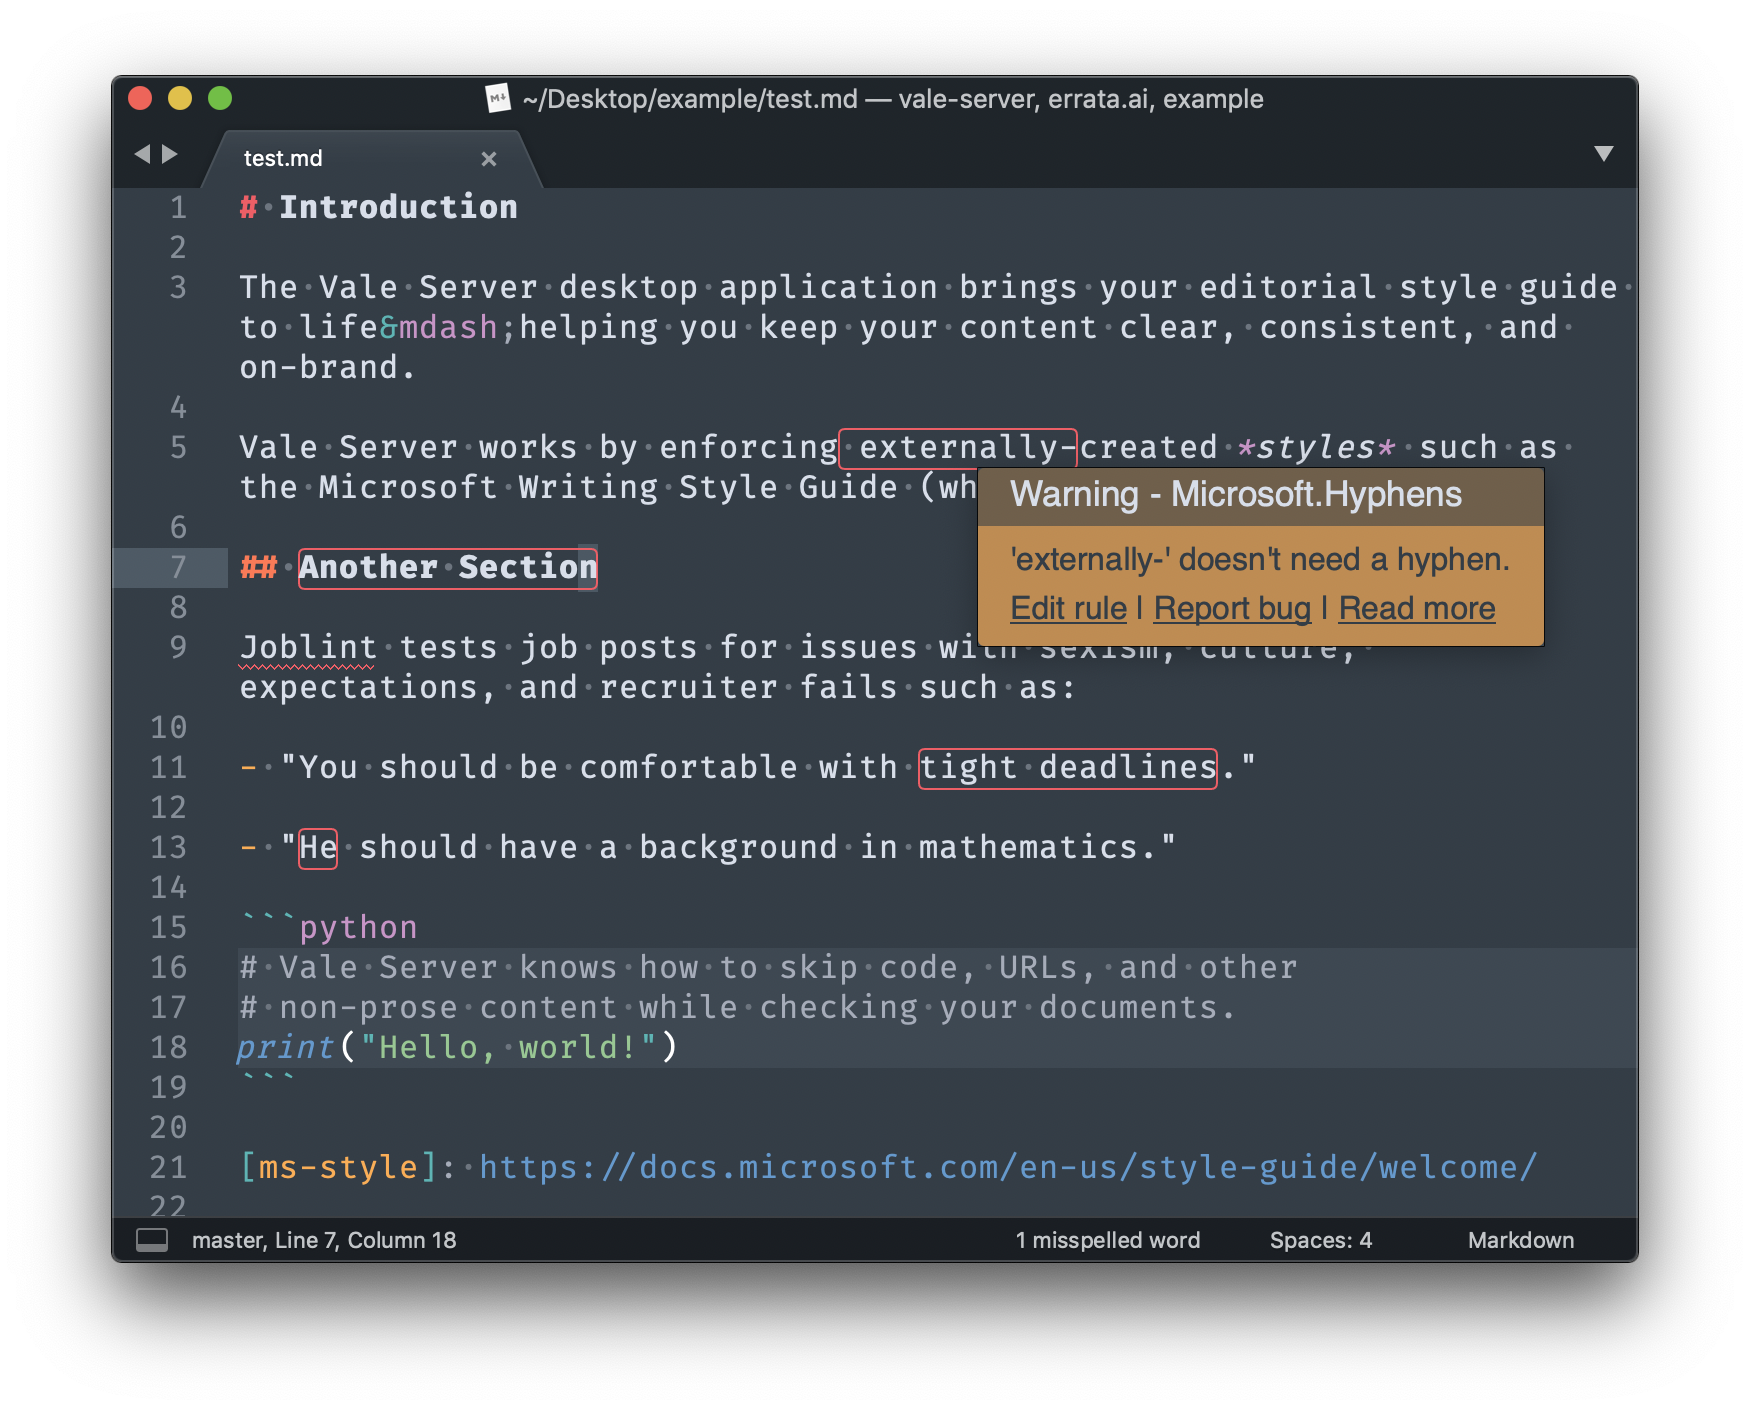 Clients (Sublime Text 3 shown above) have rich support for Vale Server and its resources.